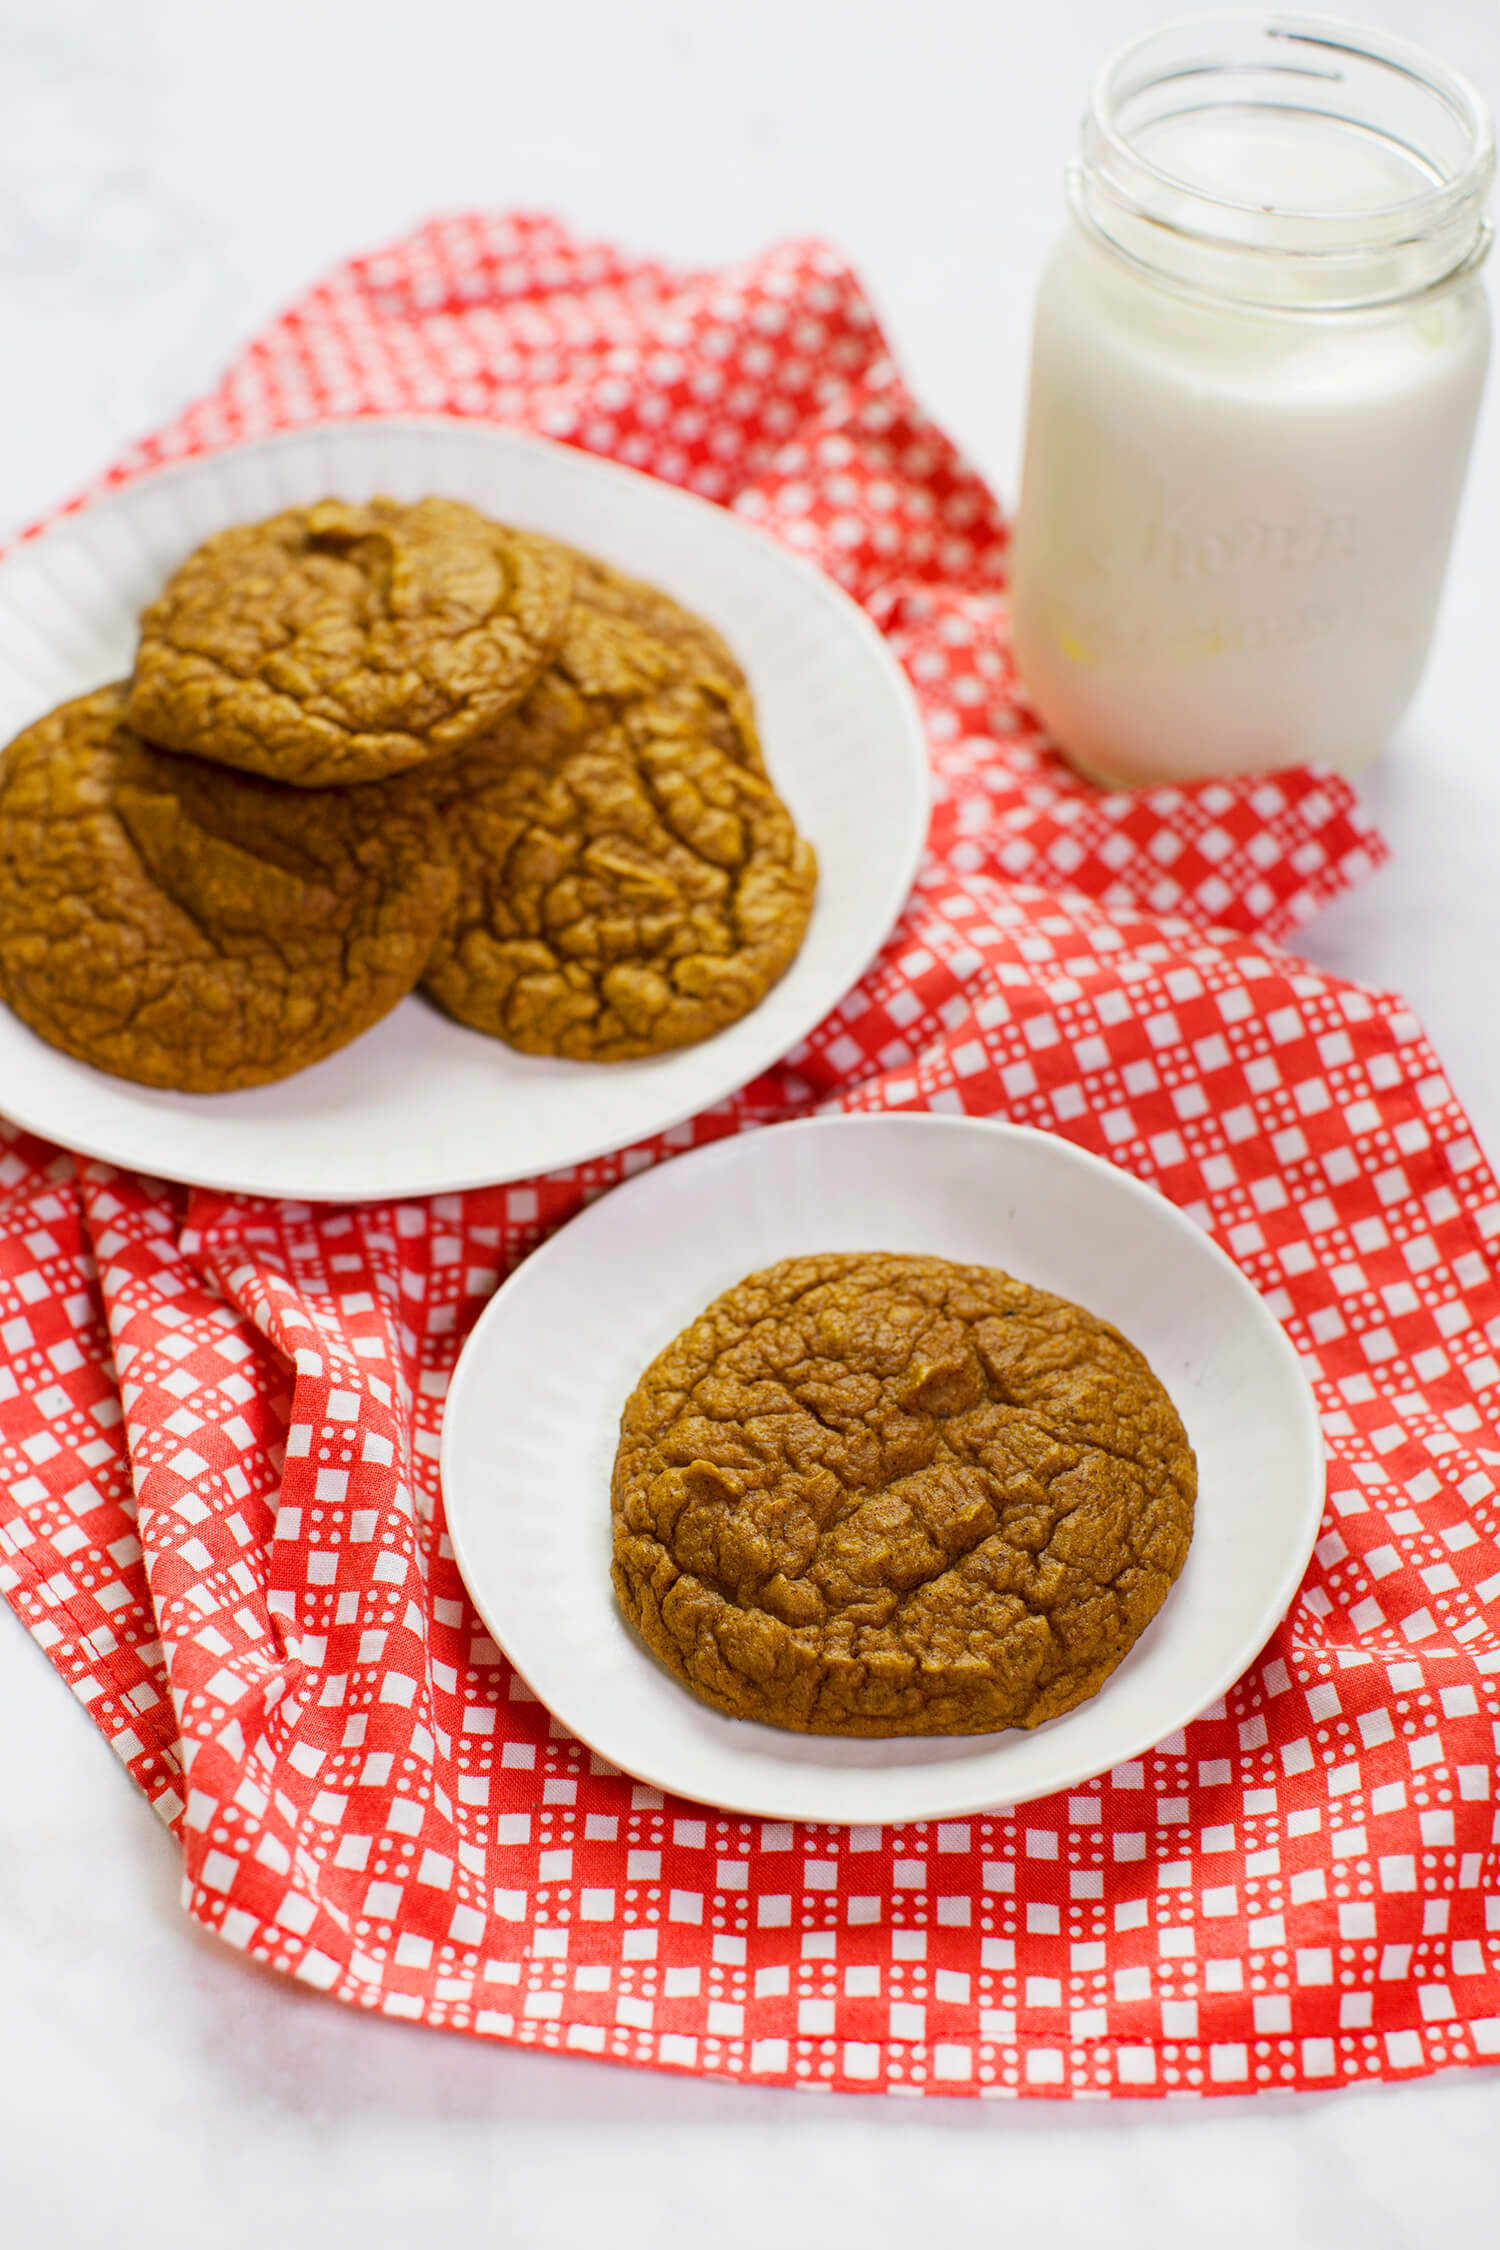 Grain-free dairy-free cookie recipe